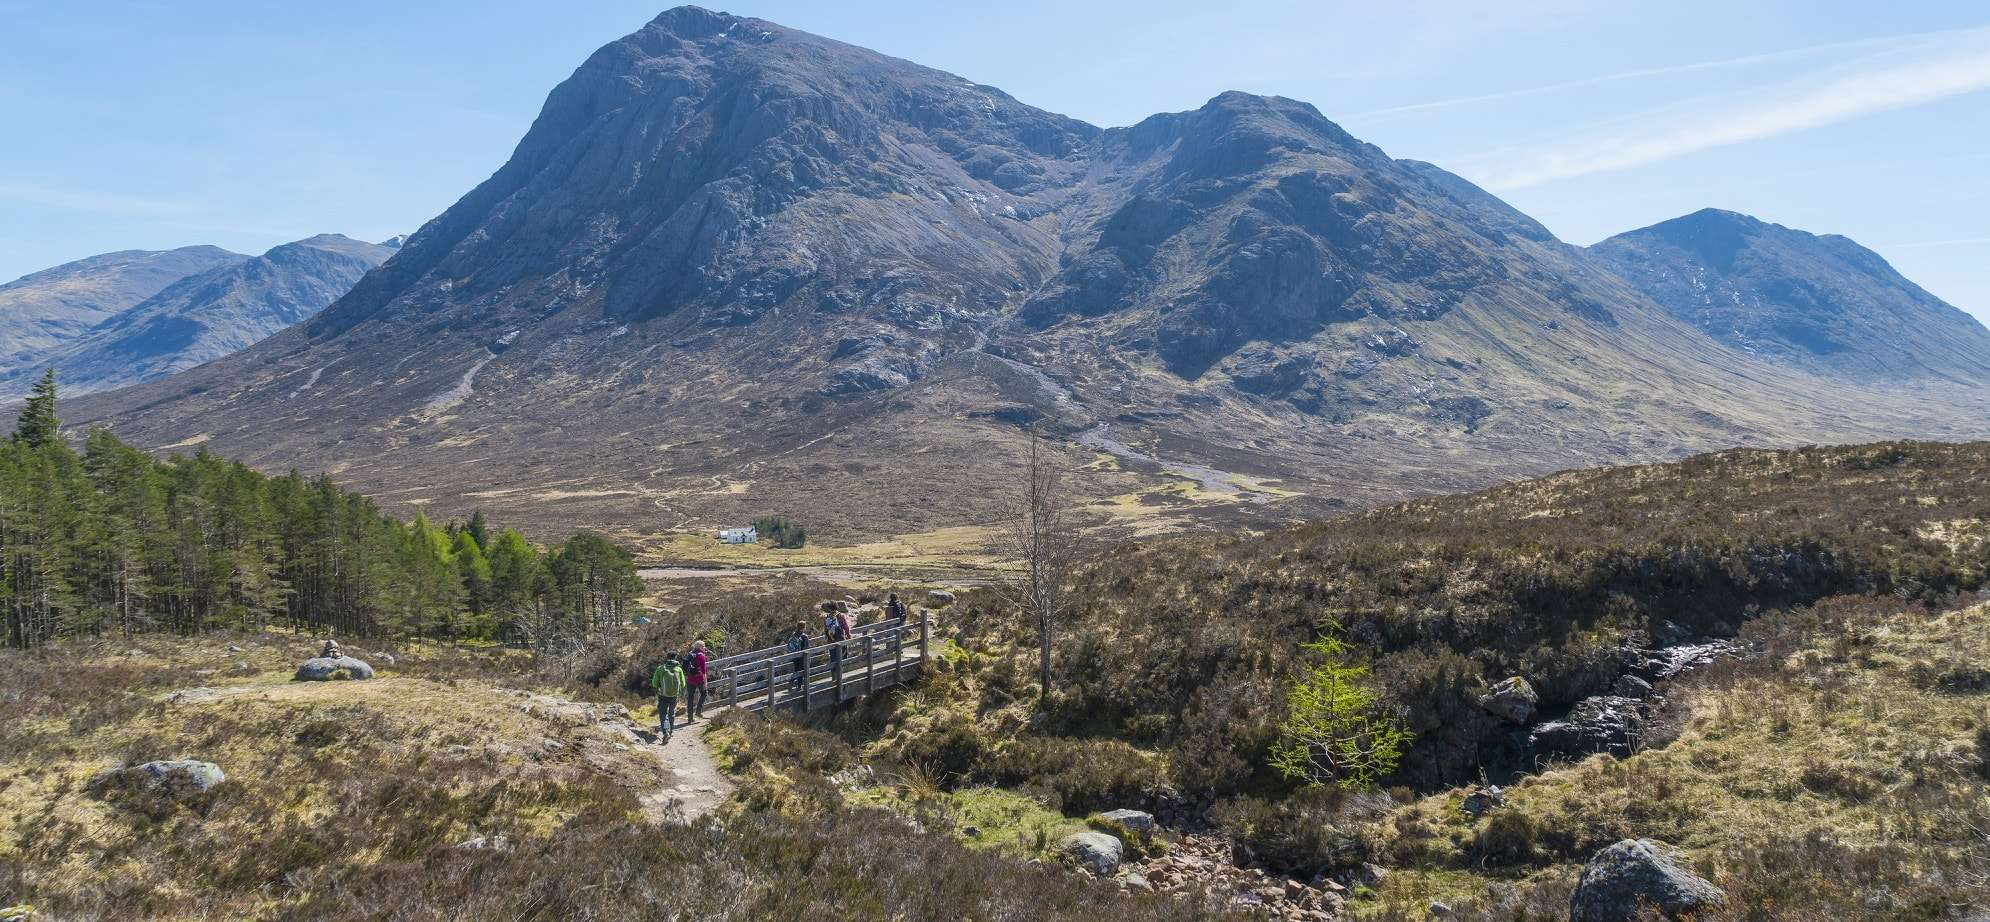 Hillwalkers on the West Highland Way passing Buachaille Etive Mor in Glencoe